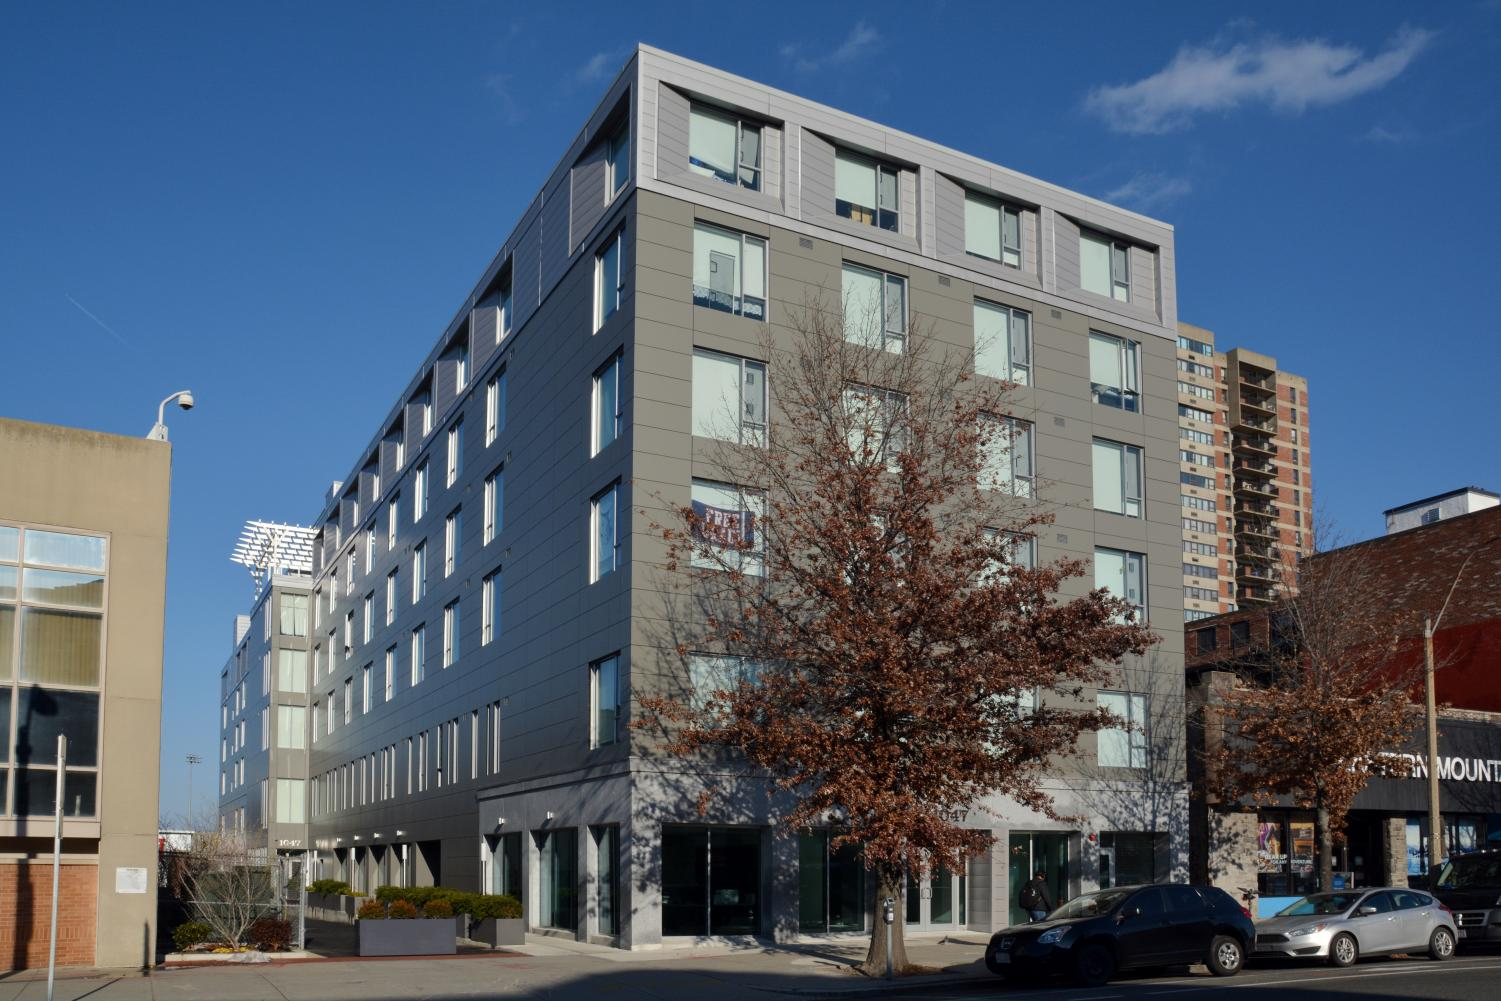 Suffolk's newest residence building at 1047 Commonwealth Ave